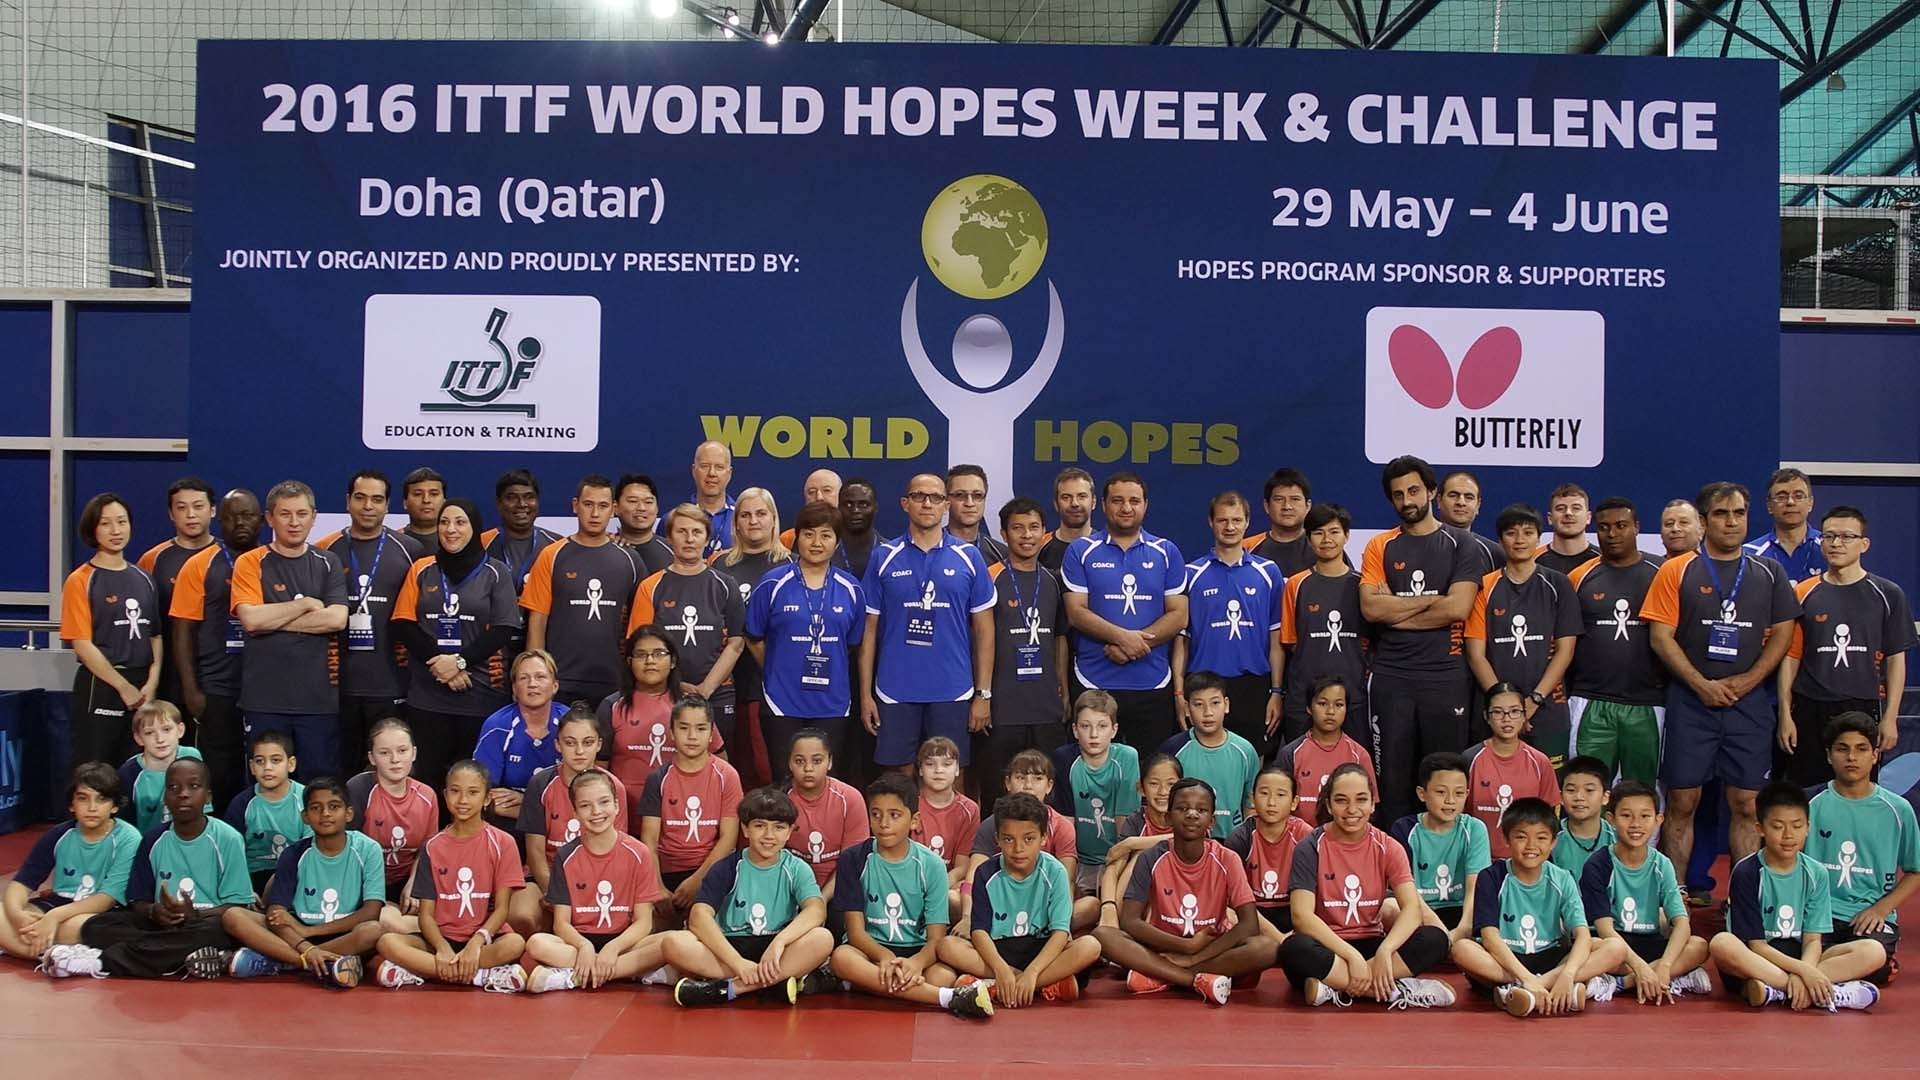 Wild Card nominations open for 2017 ITTF Hopes Week and Challenge